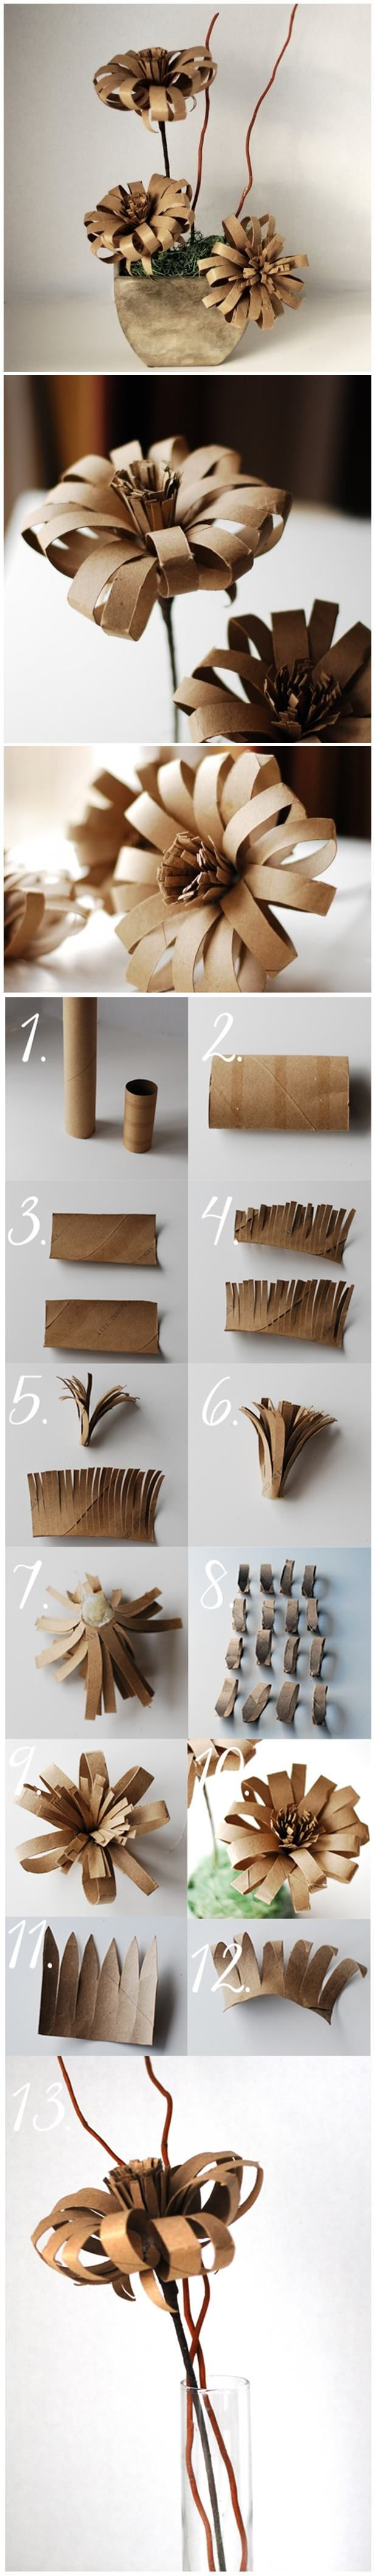 25 best ideas about toilet paper roll crafts on pinterest. Black Bedroom Furniture Sets. Home Design Ideas